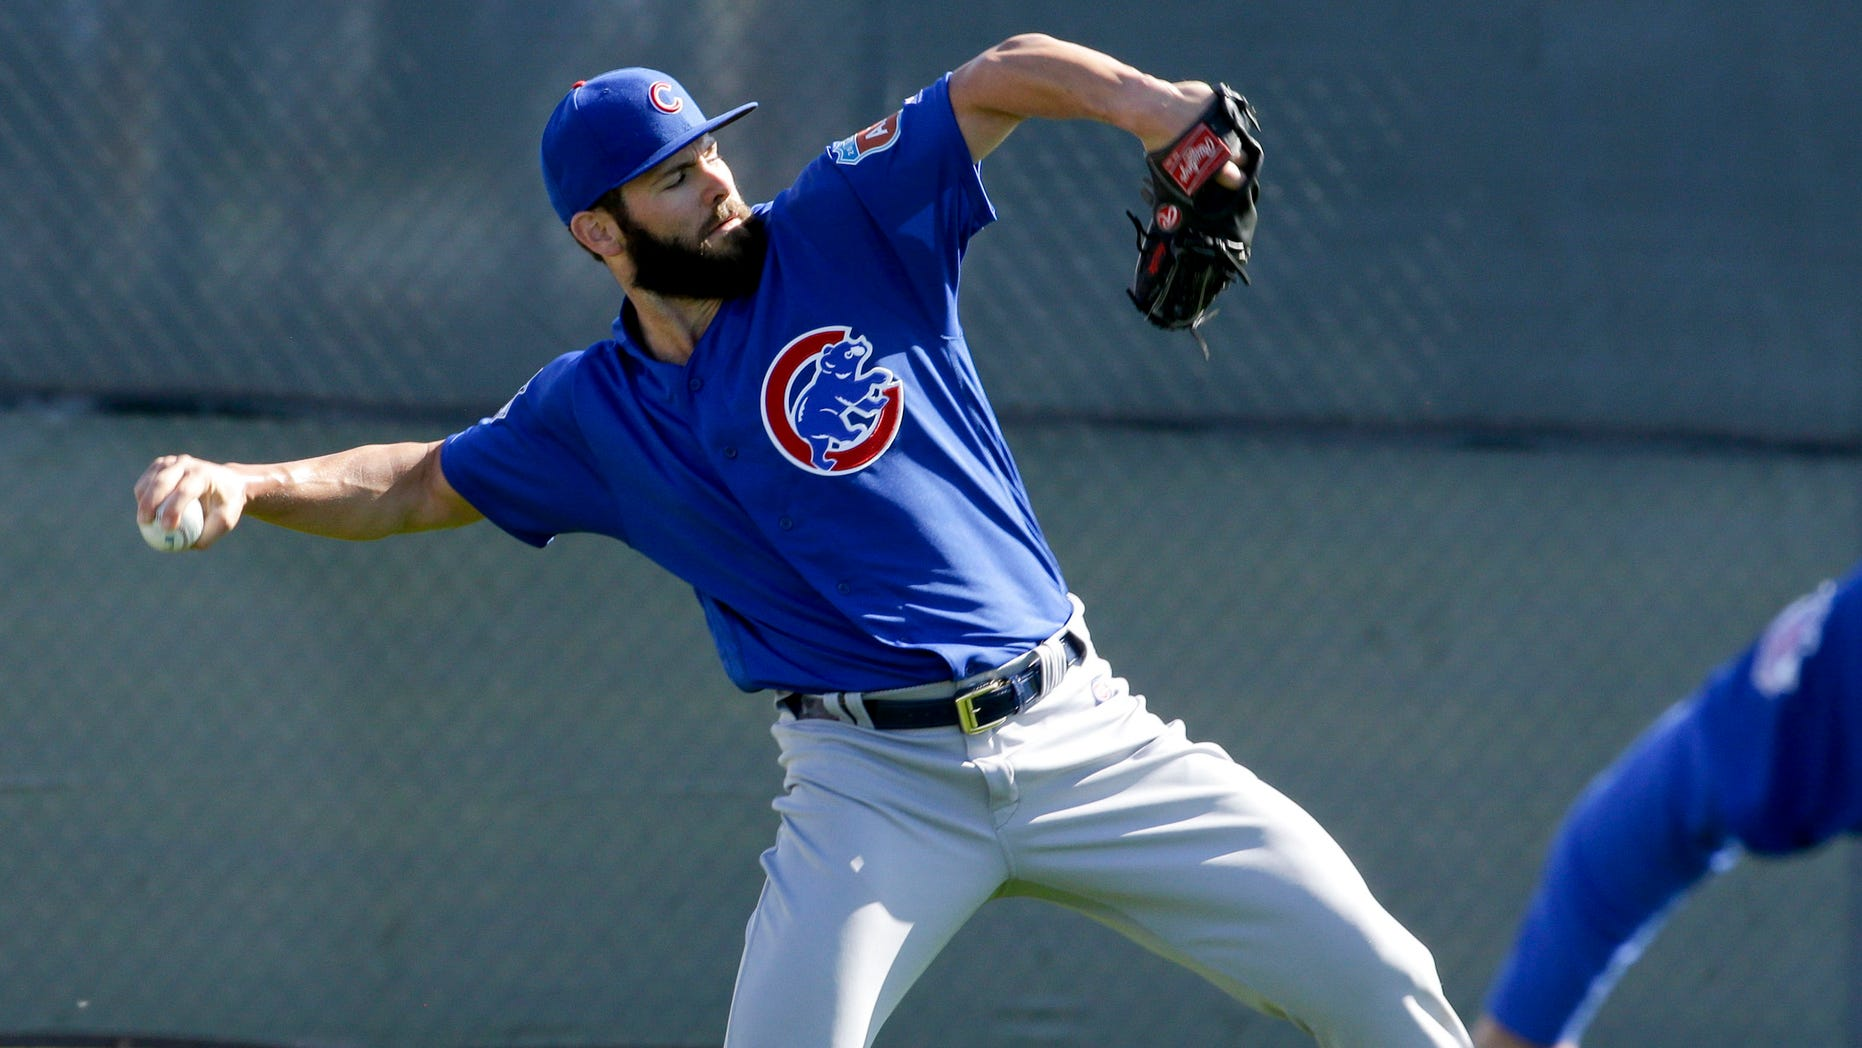 Chicago Cubs starting pitcher Jake Arrieta throws during spring baseball practice in Mesa, Ariz., Saturday, Feb. 20, 2016. (AP Photo/Chris Carlson)